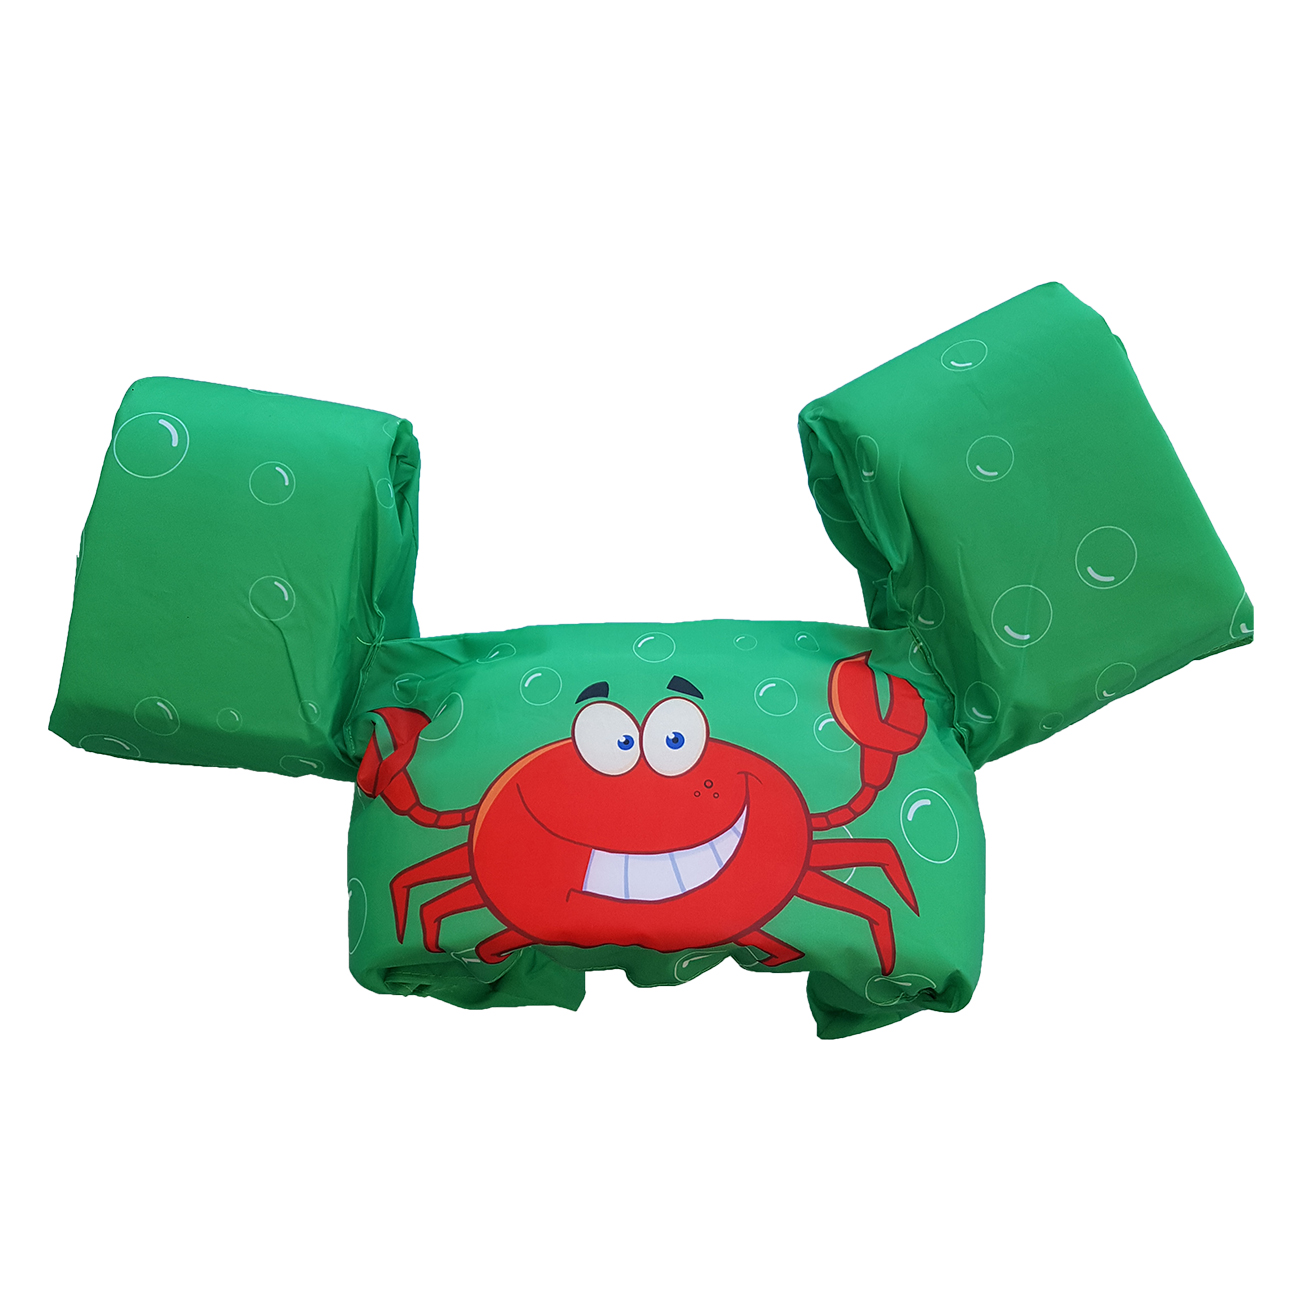 New 3-part float, Green Crab